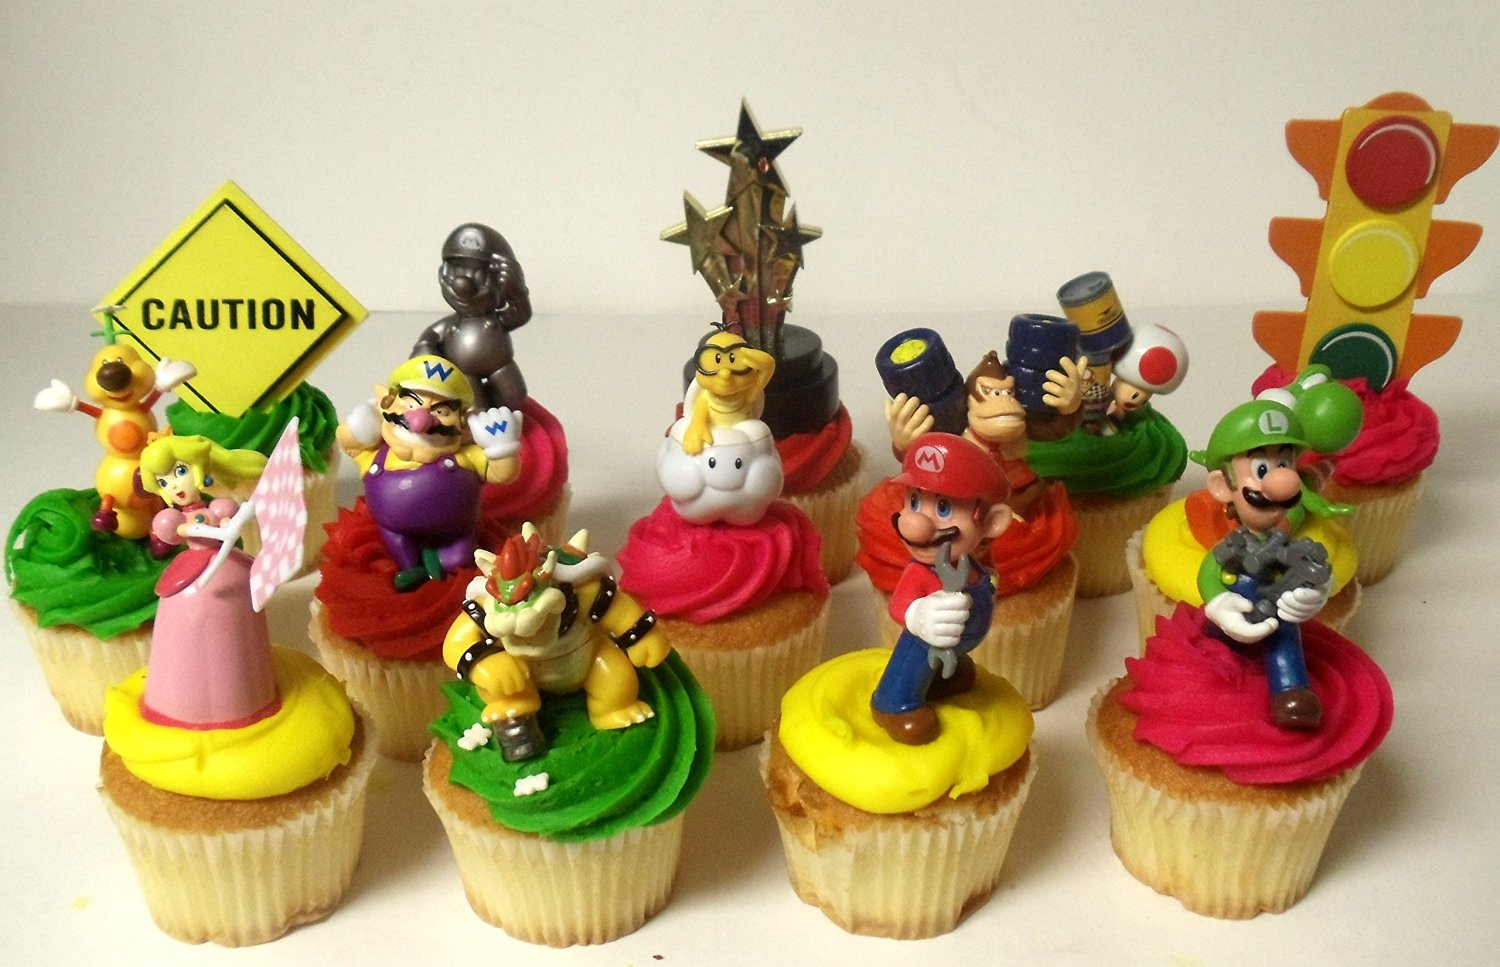 Super Mario Brothers MARIO KART 14 Piece Birthday Deluxe Cupcake Topper Set Featuring Toad, Luigi, Princess Peach, Wario, Bowser, Yoshi, Lakitu Spiny, Donkey Kong, Mario, Han Chan Wiggler and Decorative Themed Accessories